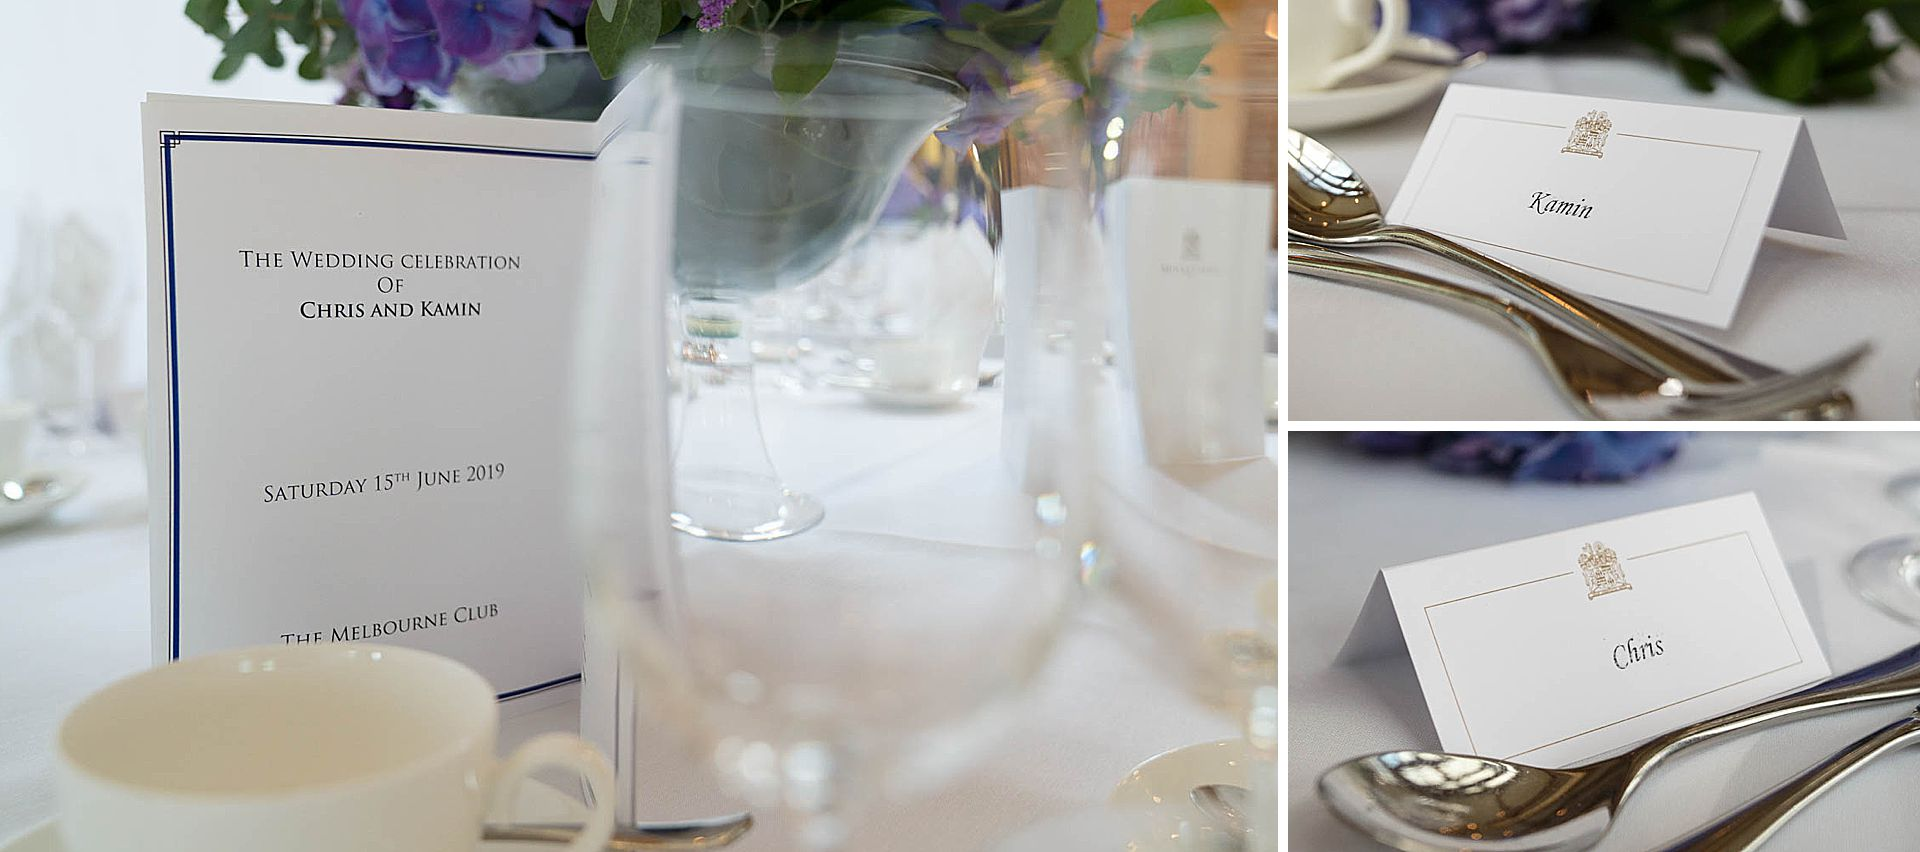 Wedding details at Brocket Hall